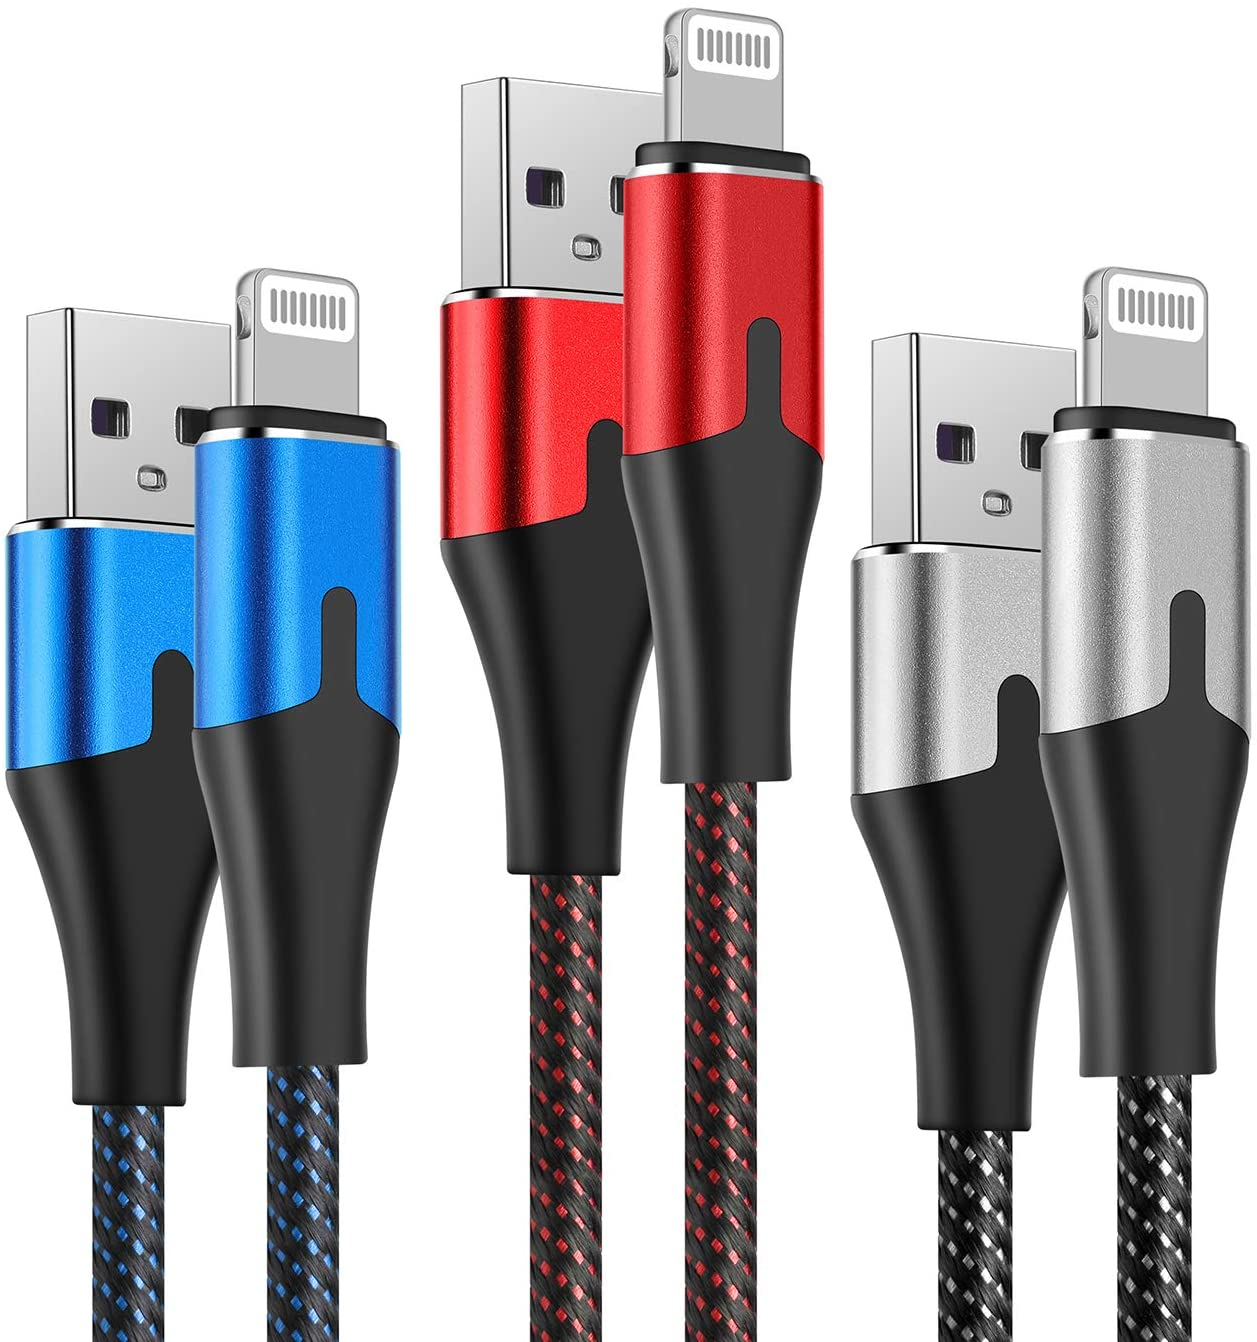 10 Foot Lightning Cable [MFi Certified] AJY Extra Long iPhone Charger 3Pack 10FT Nylon Braided Charging Cord for iPhone 11/11Pro/11Max/ X/XS/XR/XS Max/8/7/6/5S/SE/iPad Mini Air Silver Red Blue